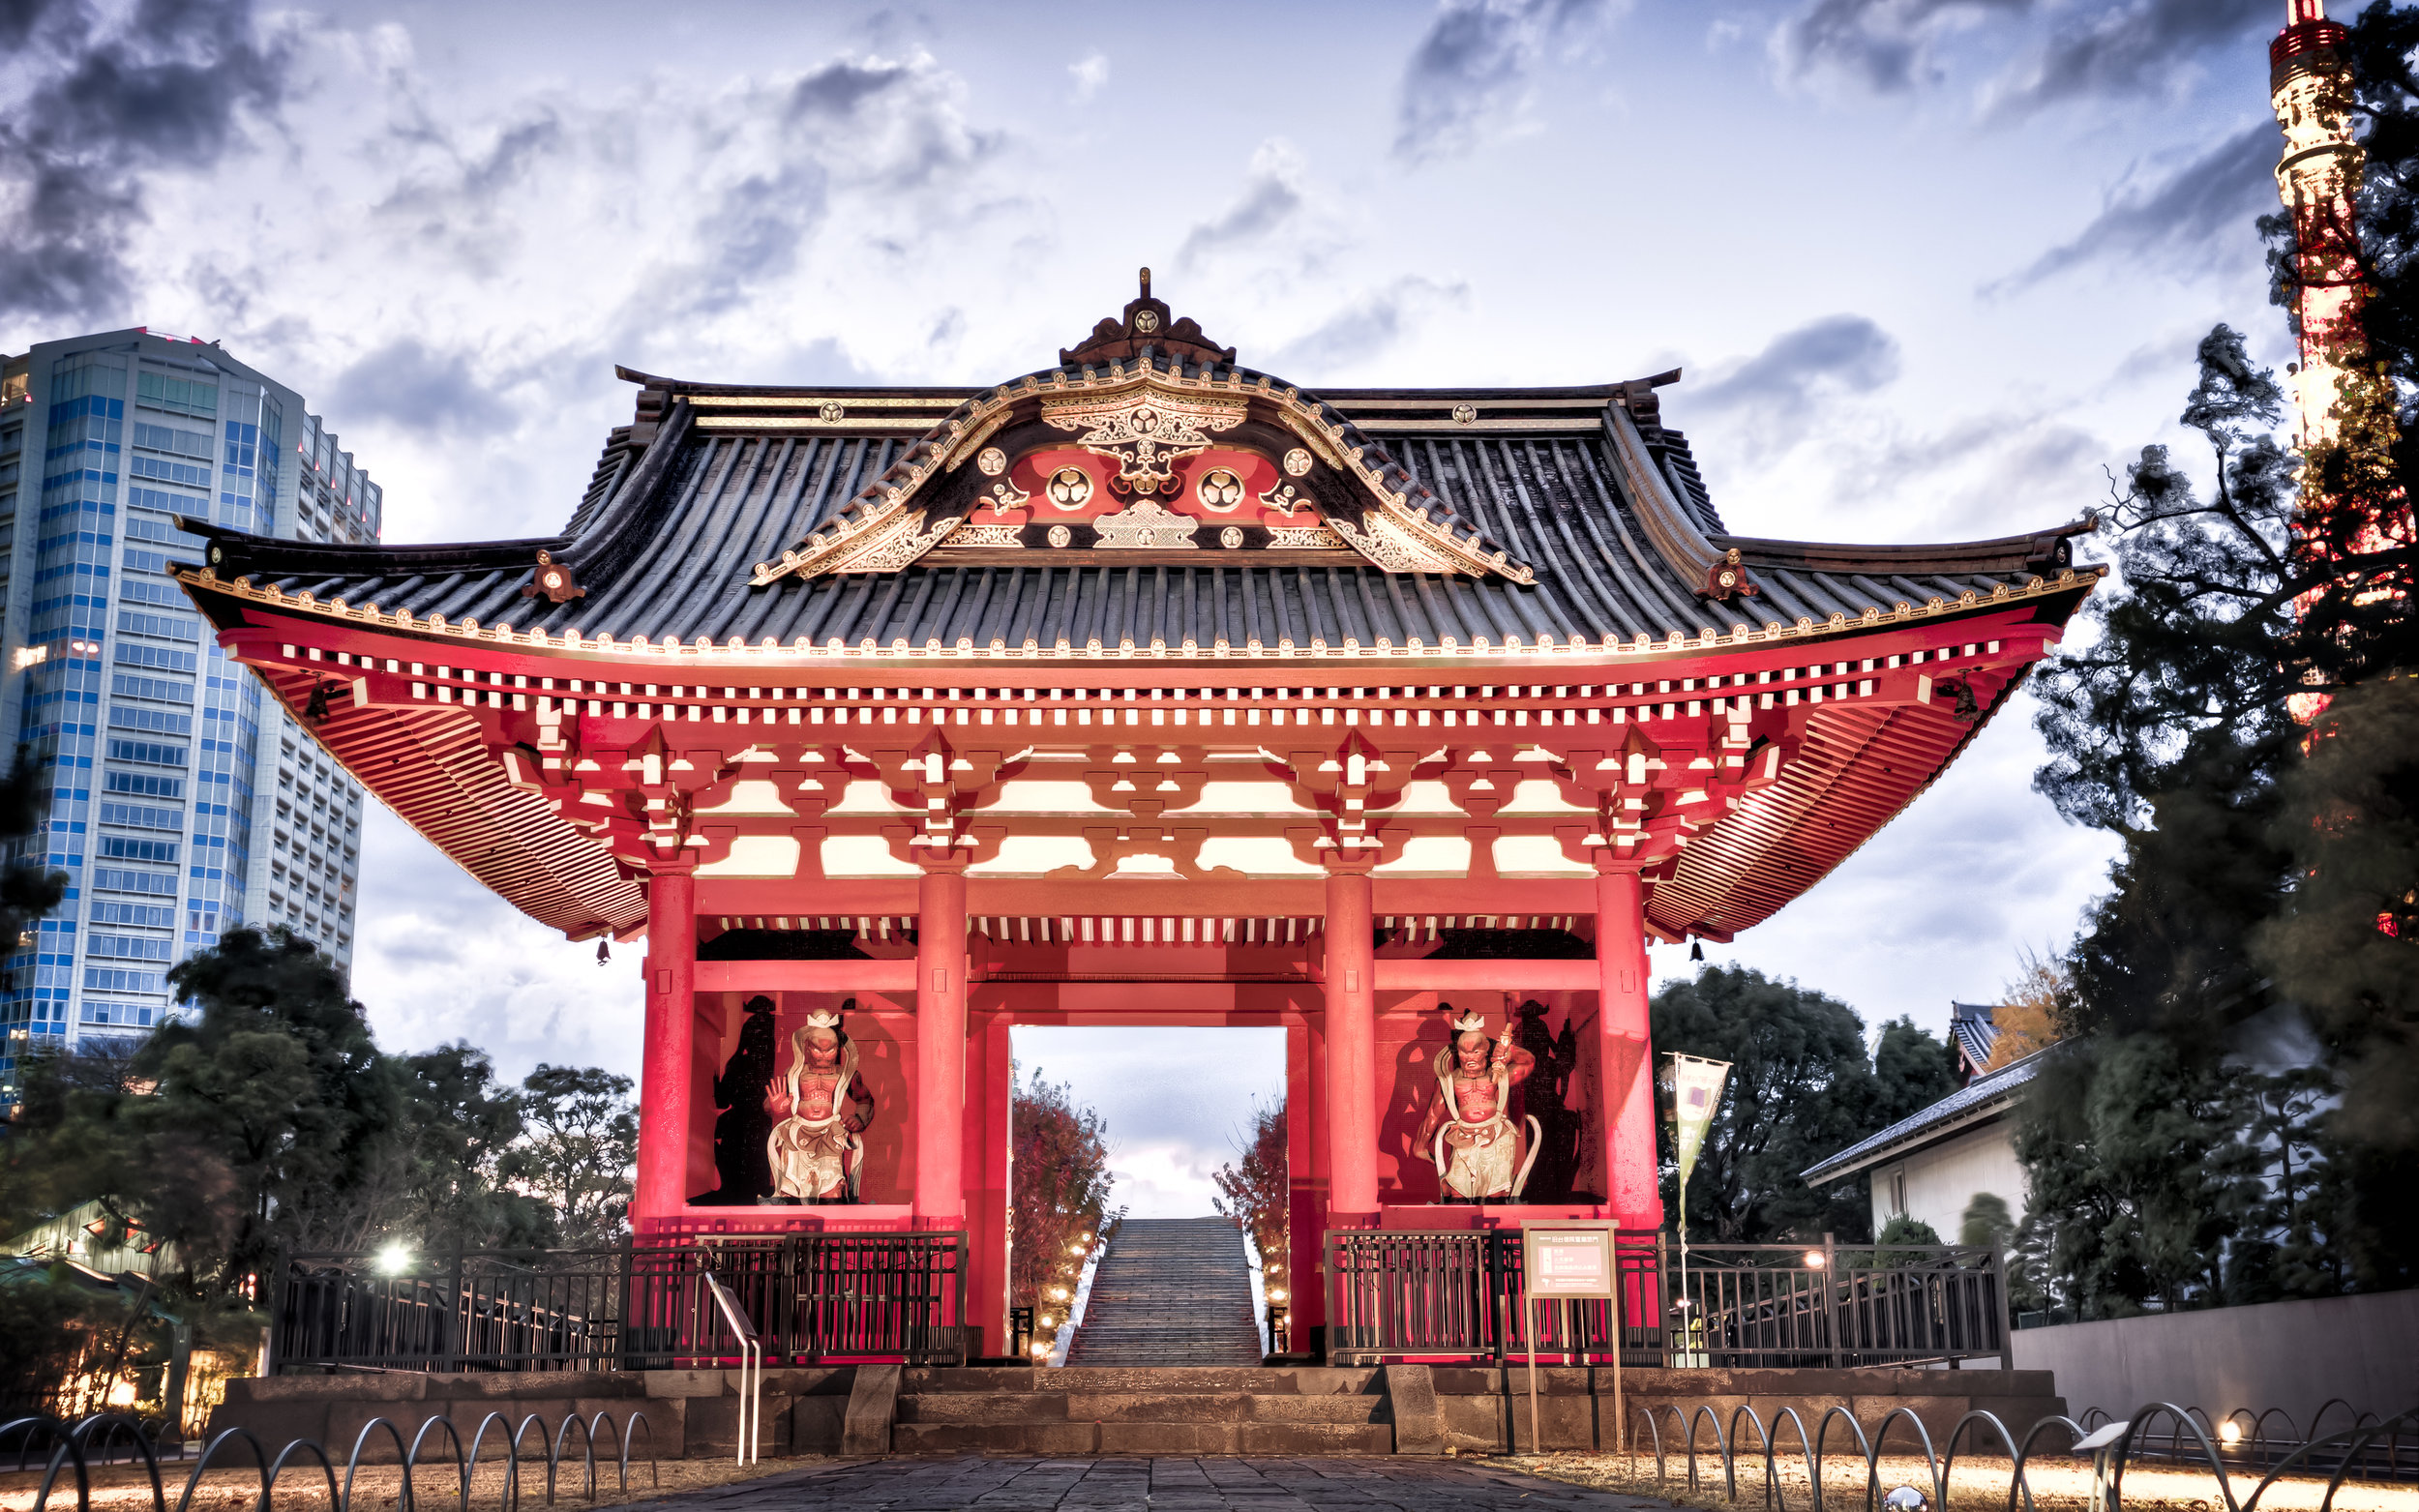 Temples-and-Shrines-13.jpg